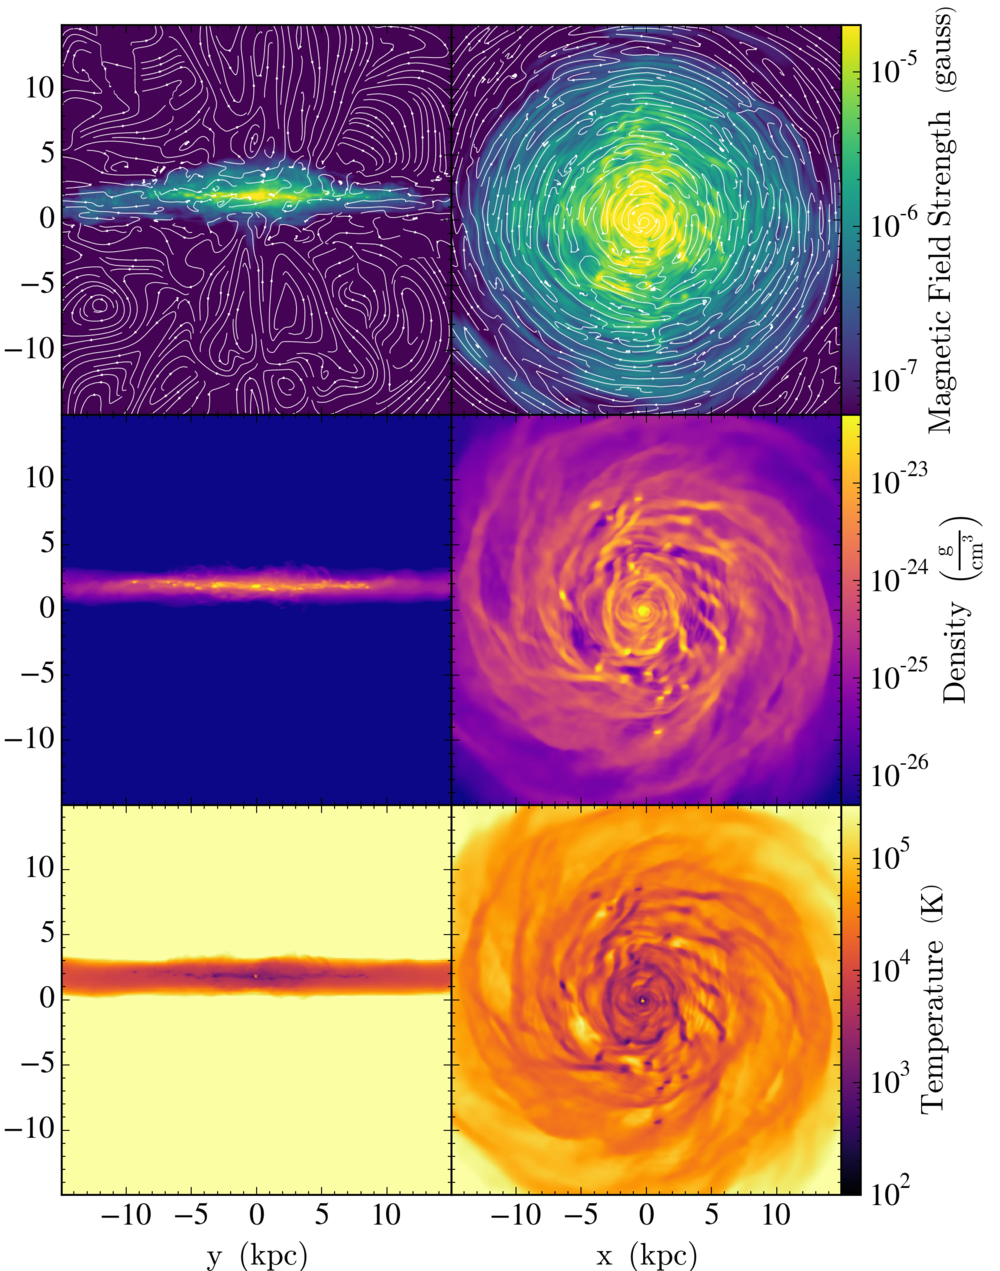 Figure 1:  The edge-on (left) and face-on (right) projections of the magnetic field strength (top), density (center), and temperature (bottom) of galaxy g80LR at t = 2.1 Gyr in 30 kpc boxes. Magnetic field streamlines are plotted in black over the image of the magnetic field strength.